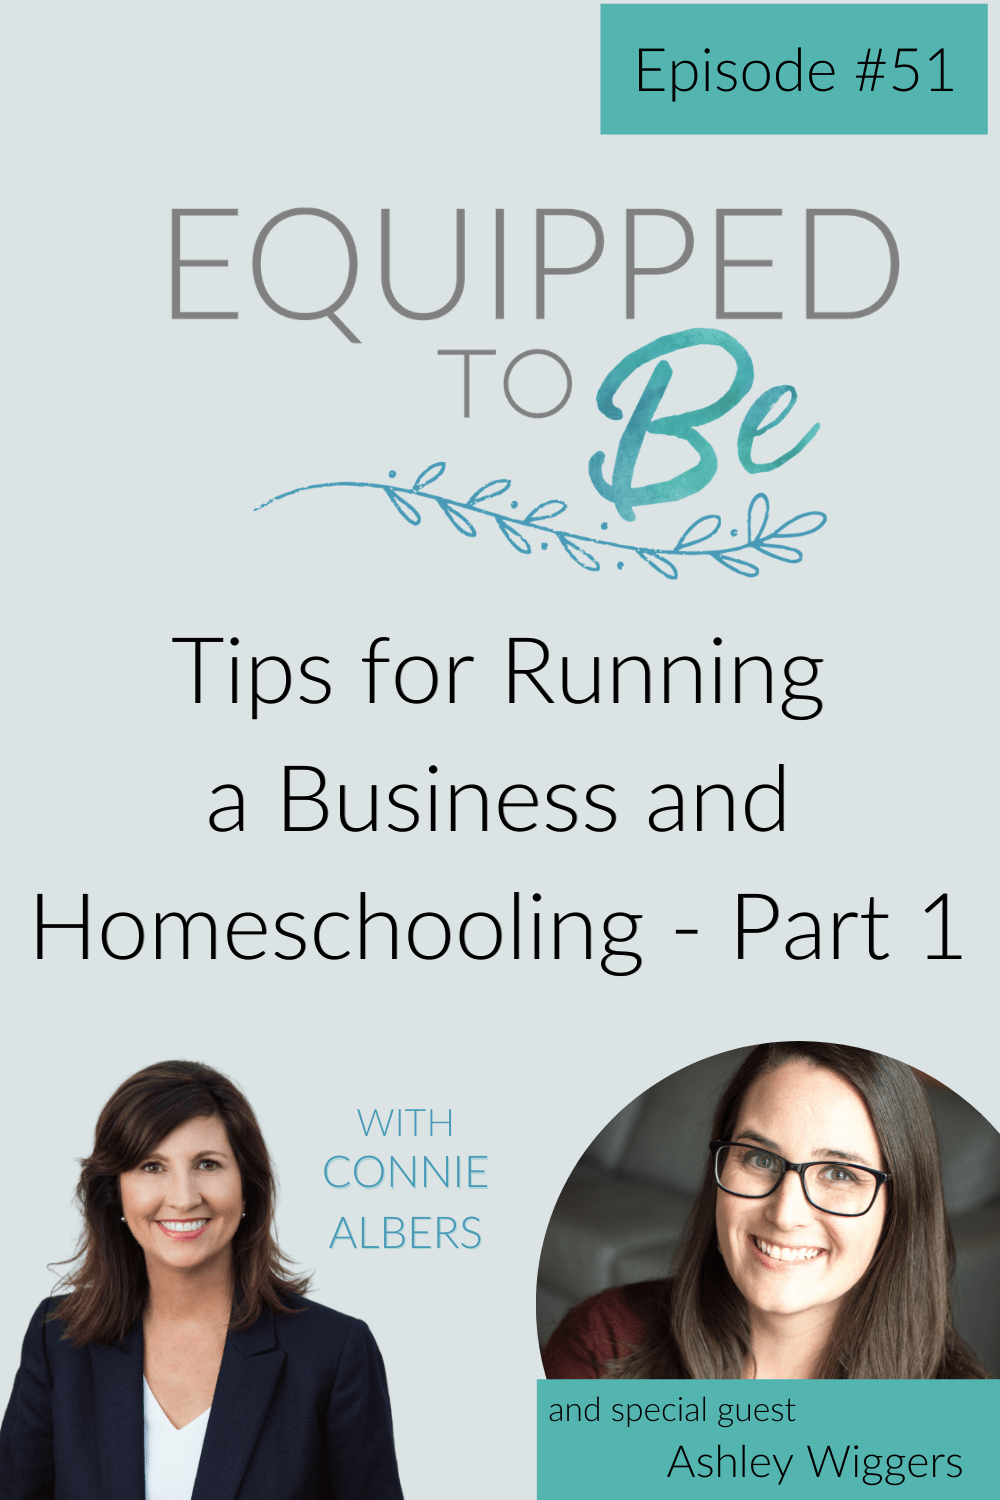 Tips for Running a Business and Homeschooling with Ashley Wiggers Part 1 - ETB #51